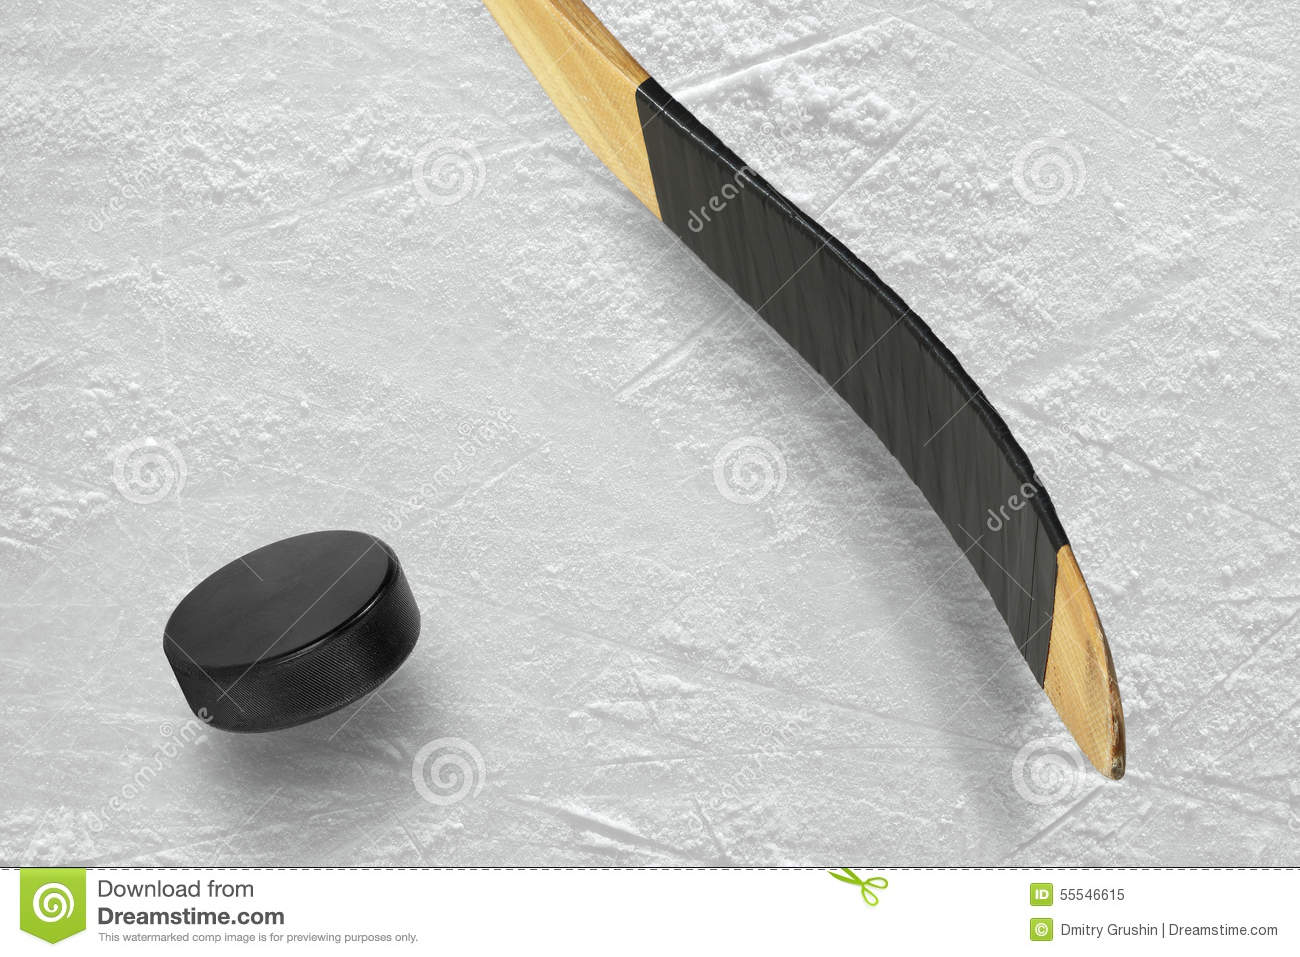 how to make a hockey stick at home